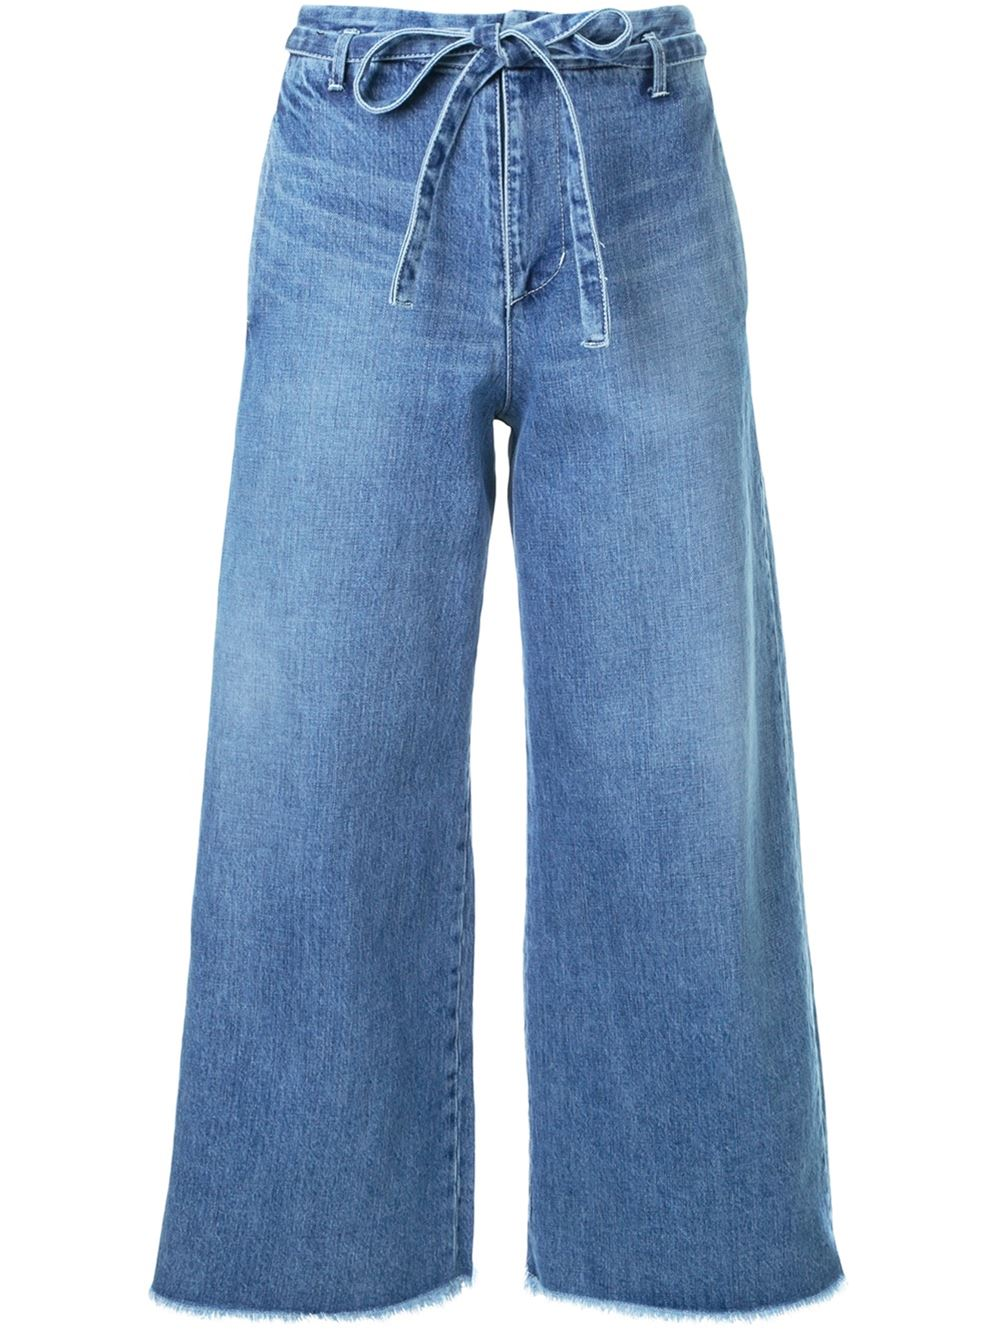 Fabiane Roux Cut-Off Wide Cropped Jeans